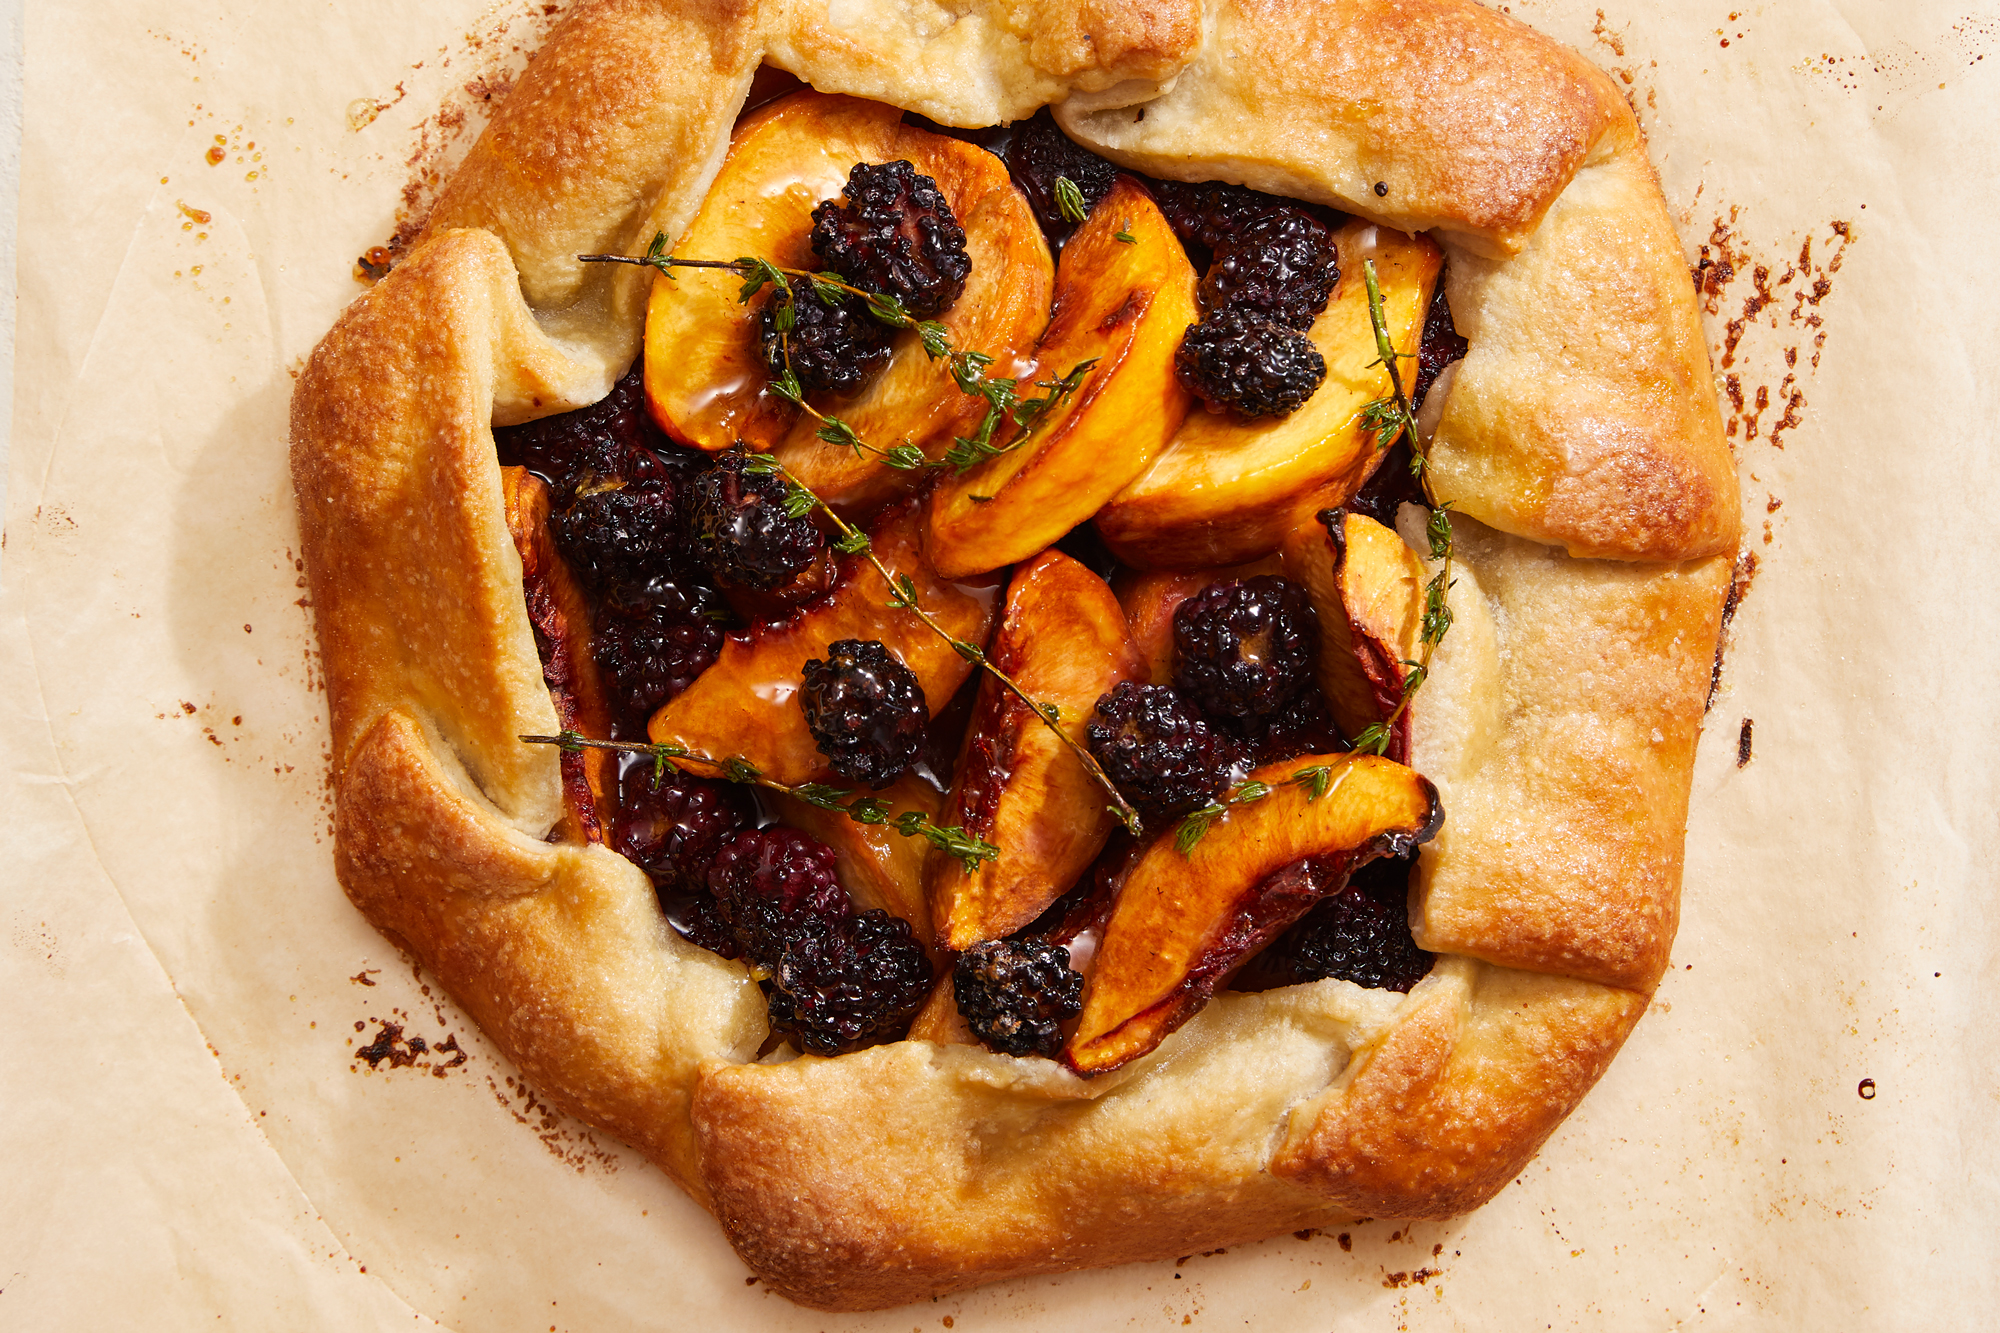 Summer Peach and Blackberry Galette